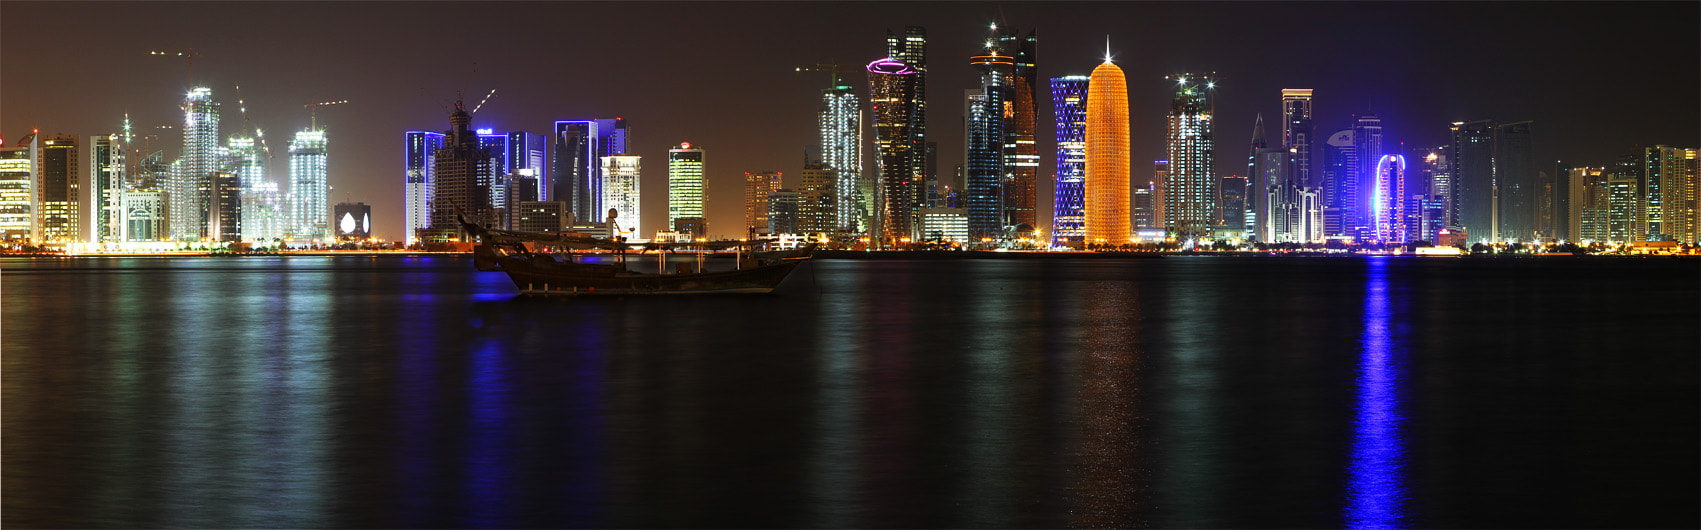 Photograph Qatar by yasser almalki on 500px